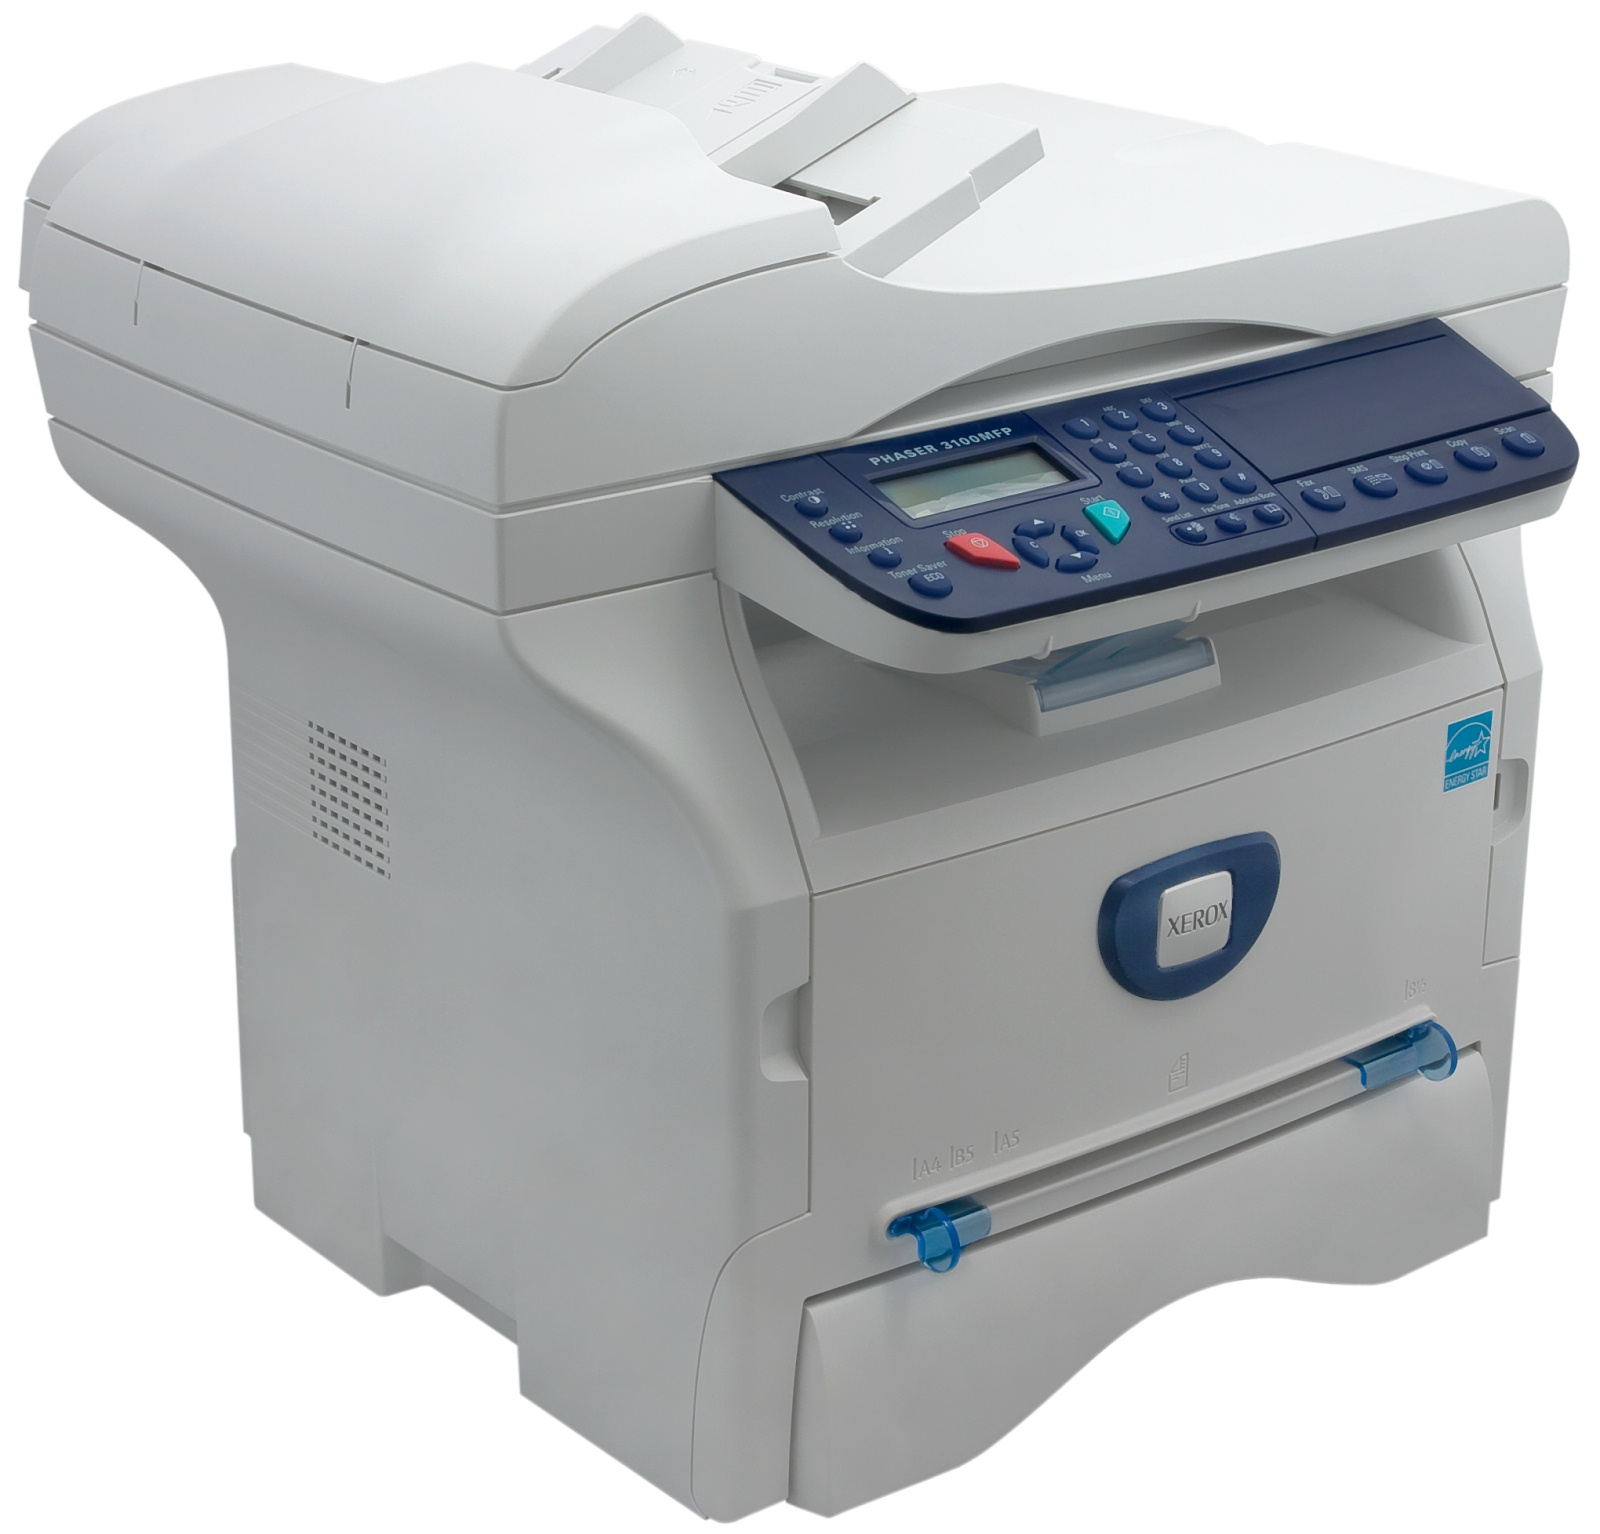 XEROX PHASER 3100 MFP GDI DRIVERS FOR WINDOWS DOWNLOAD